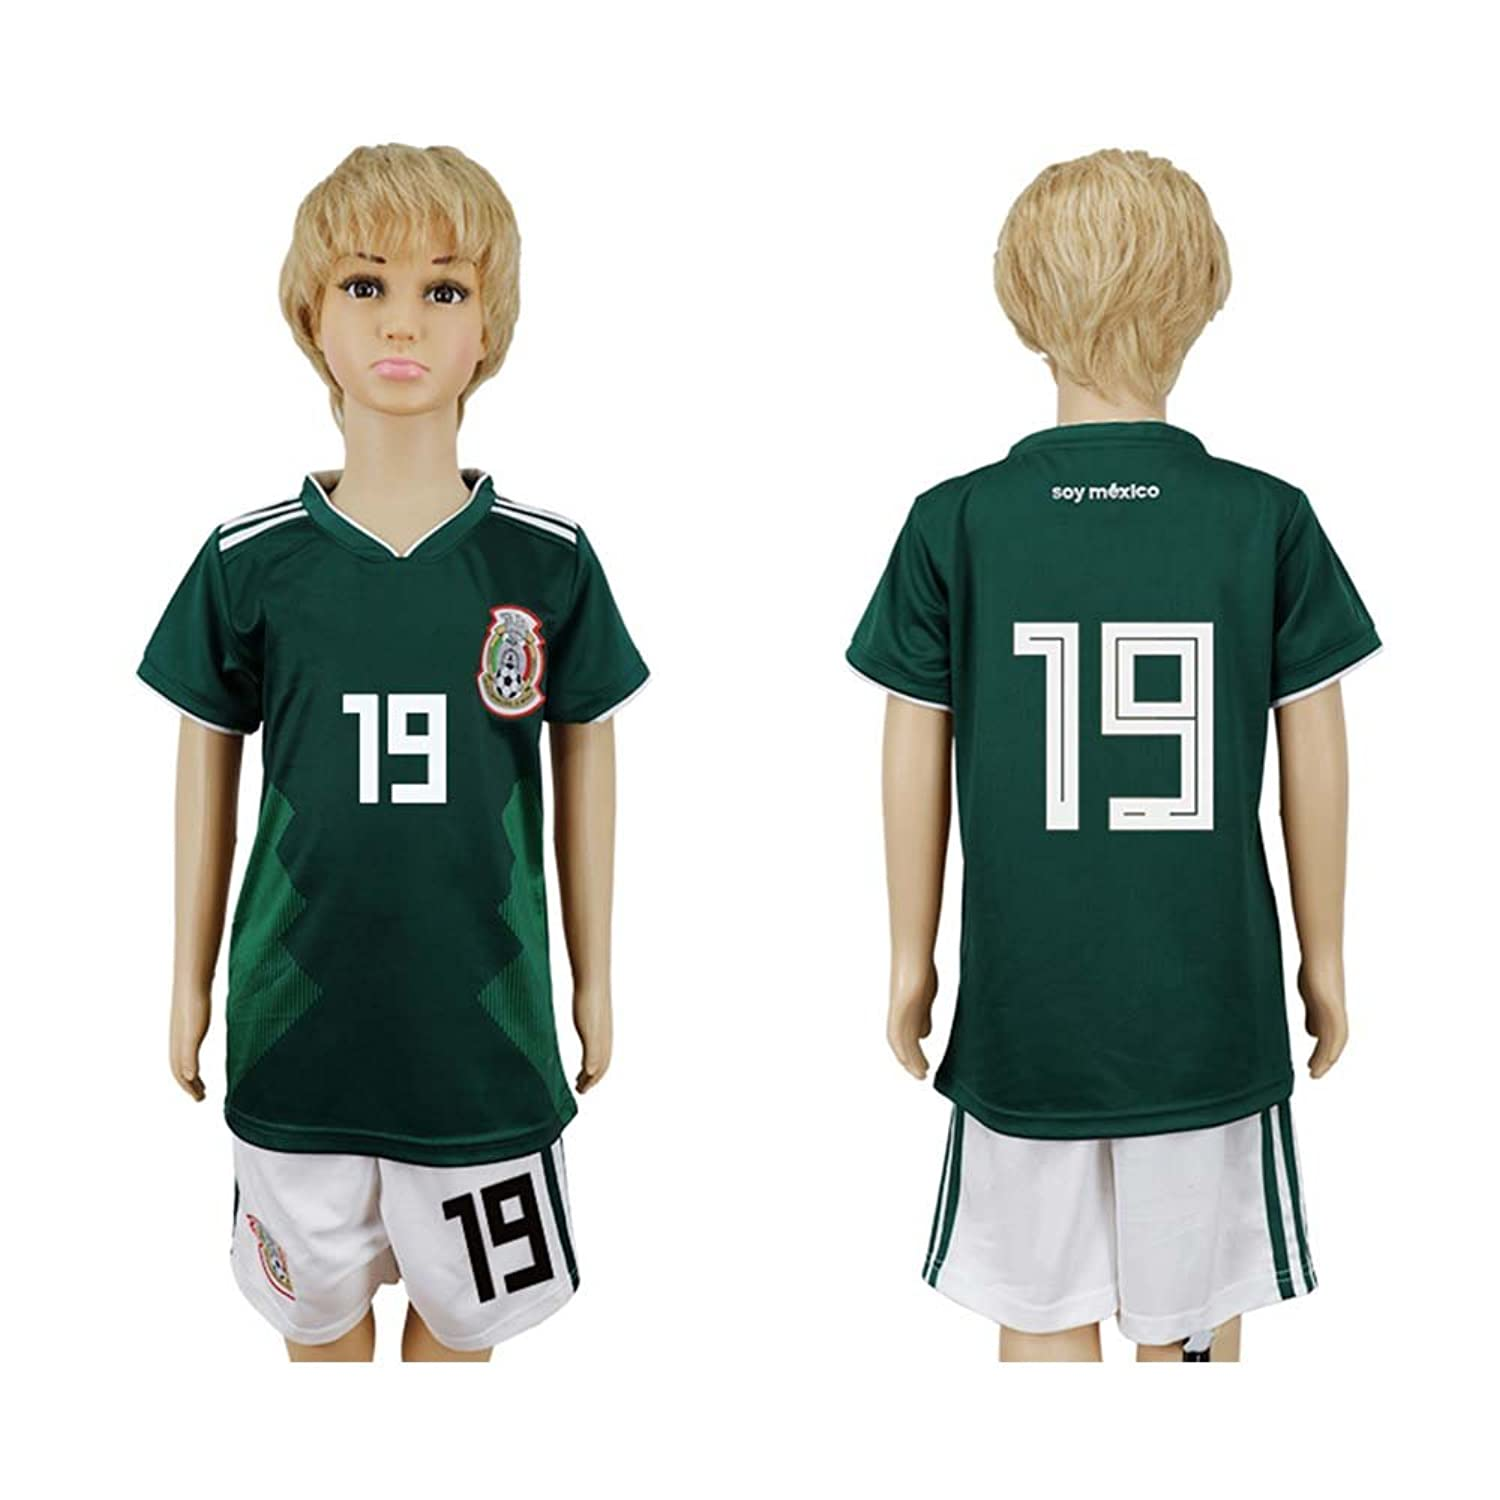 Puizozi SHIRT ボーイズ B07D3KD9DB28# (12 to 14 Years Old)